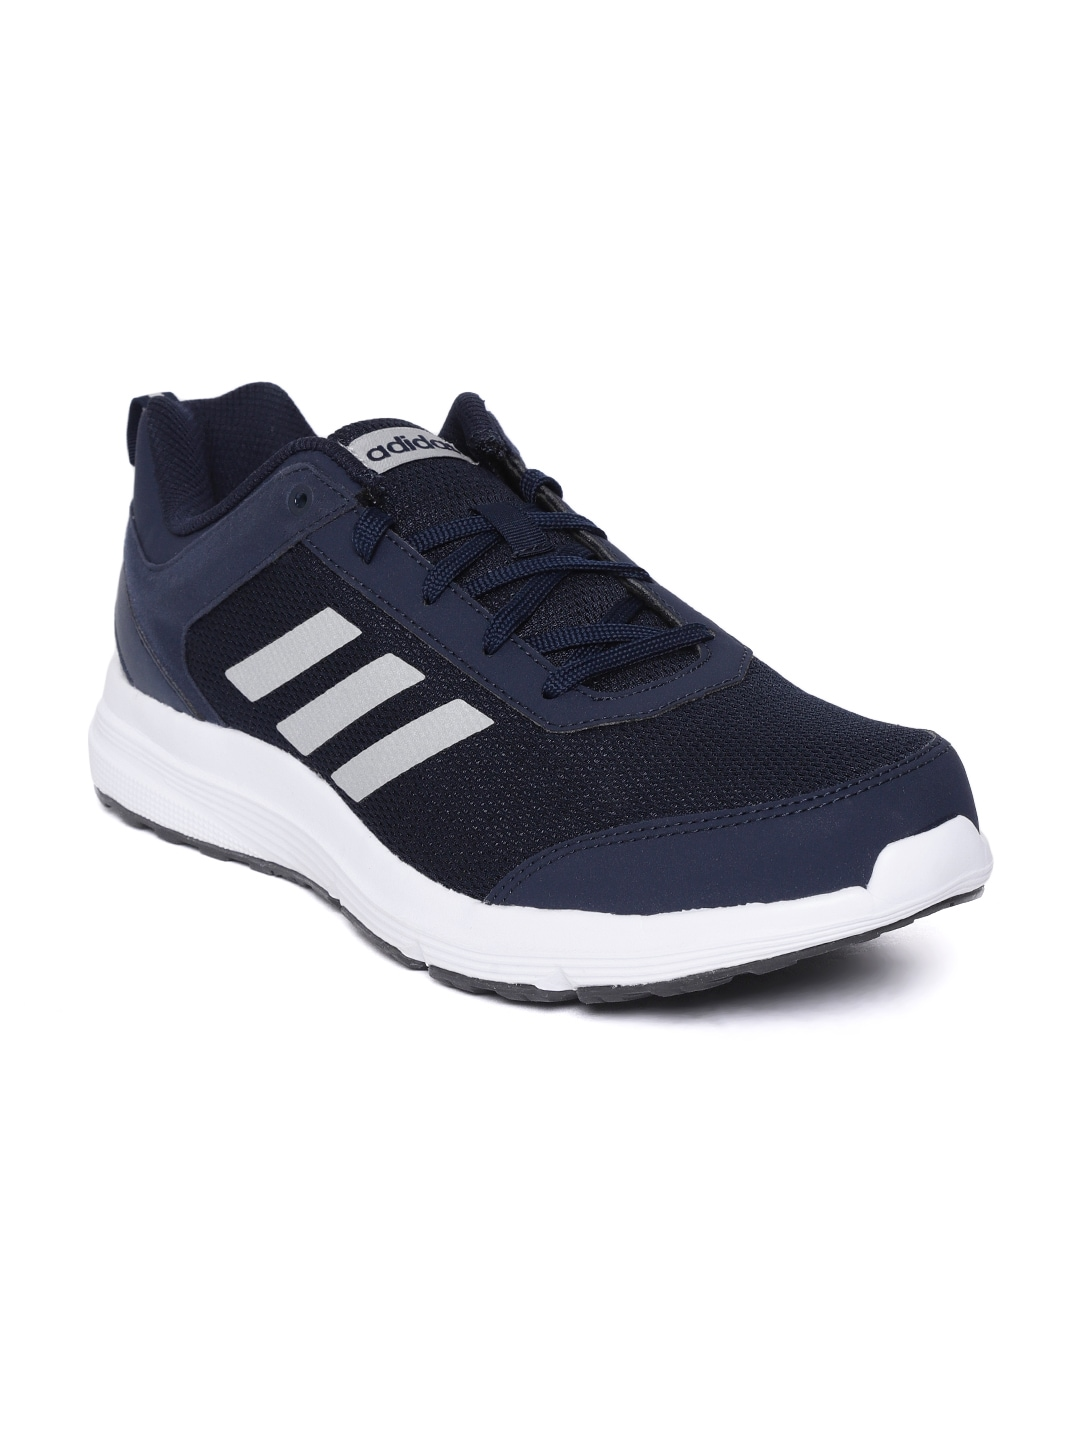 official photos 17f7e 57265 Shoes for Men - Buy Mens Shoes Online at Best Price   Myntra